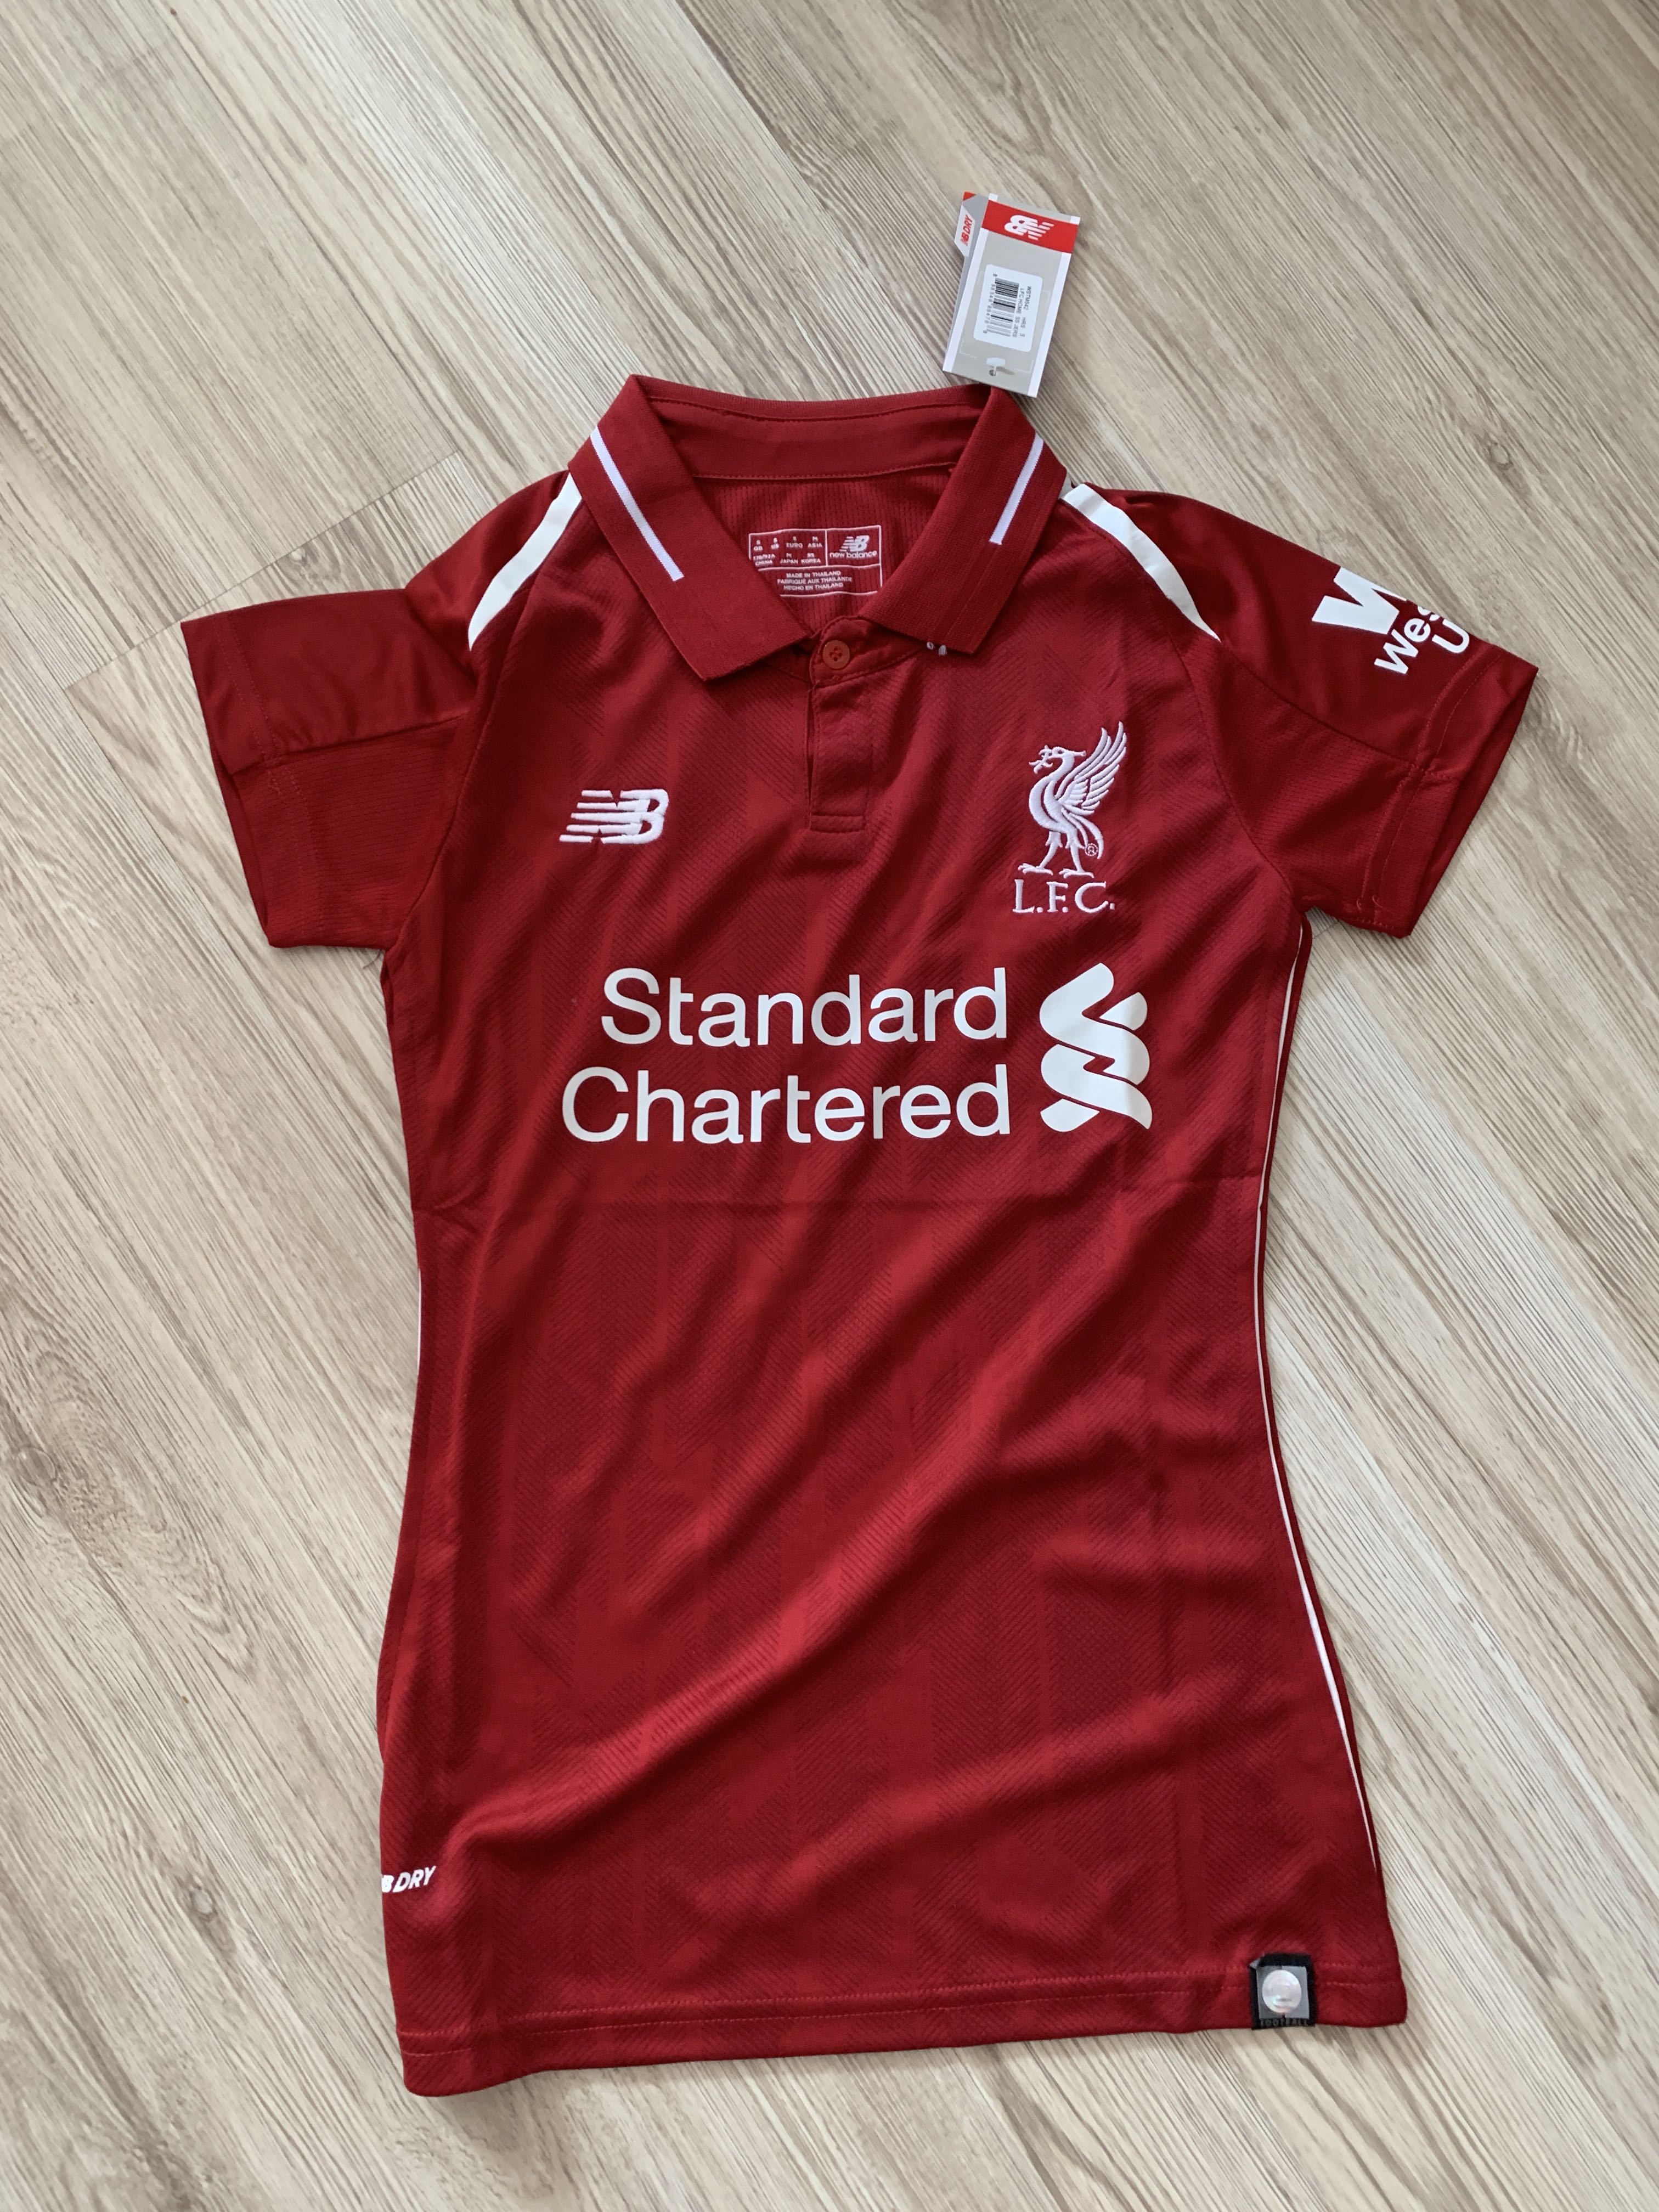 5adc01d6daf Women s Liverpool jersey women Liverpool home kit jersey 18 19 ...